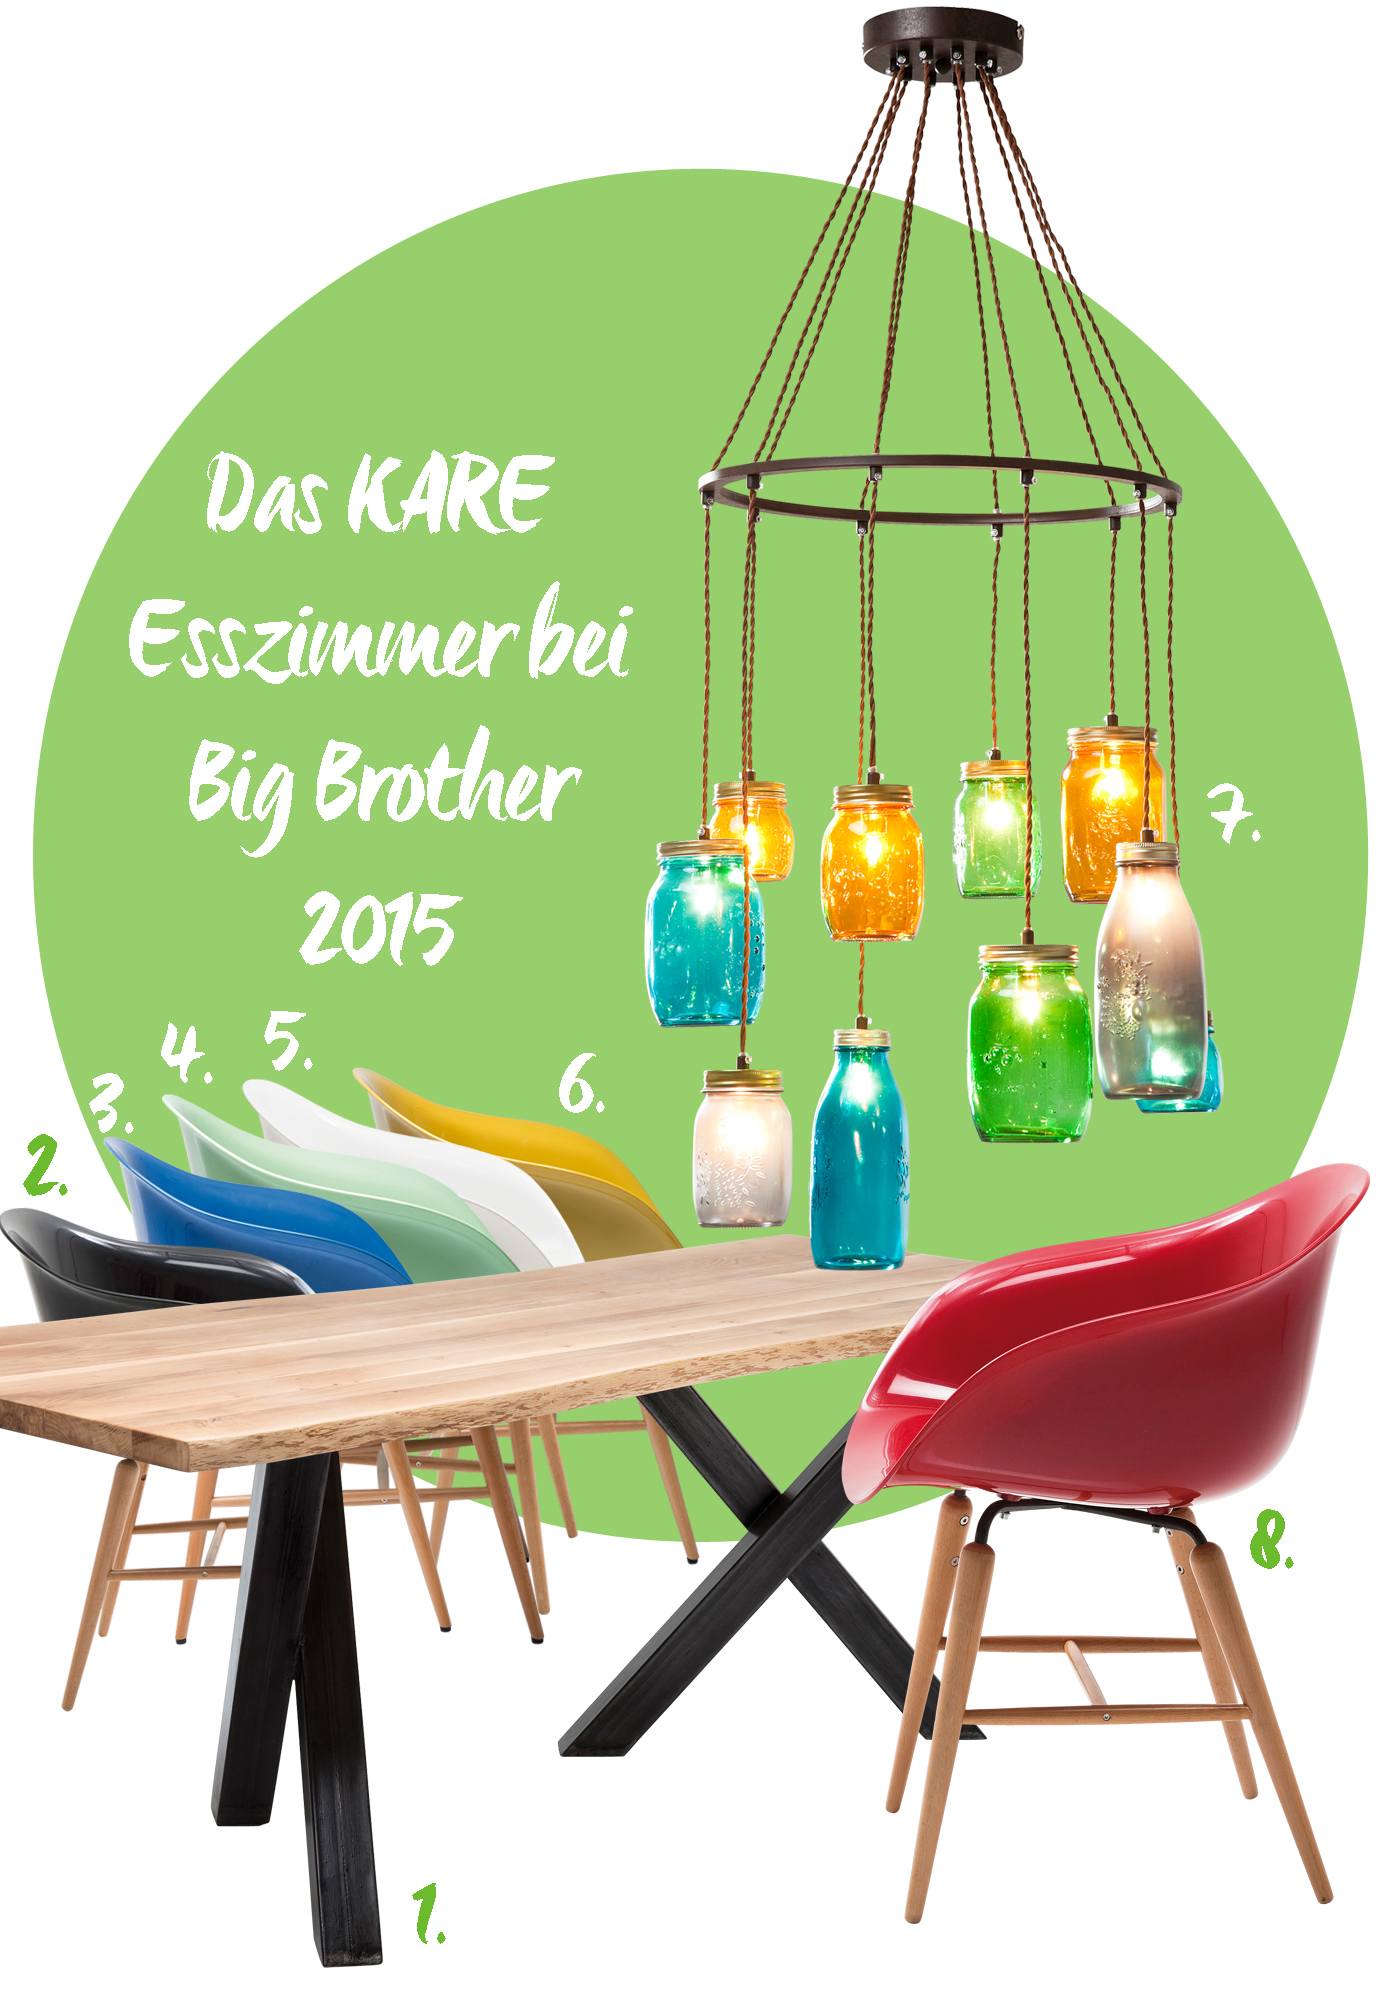 Das KARE Esszimmer bei Big Brother 2015